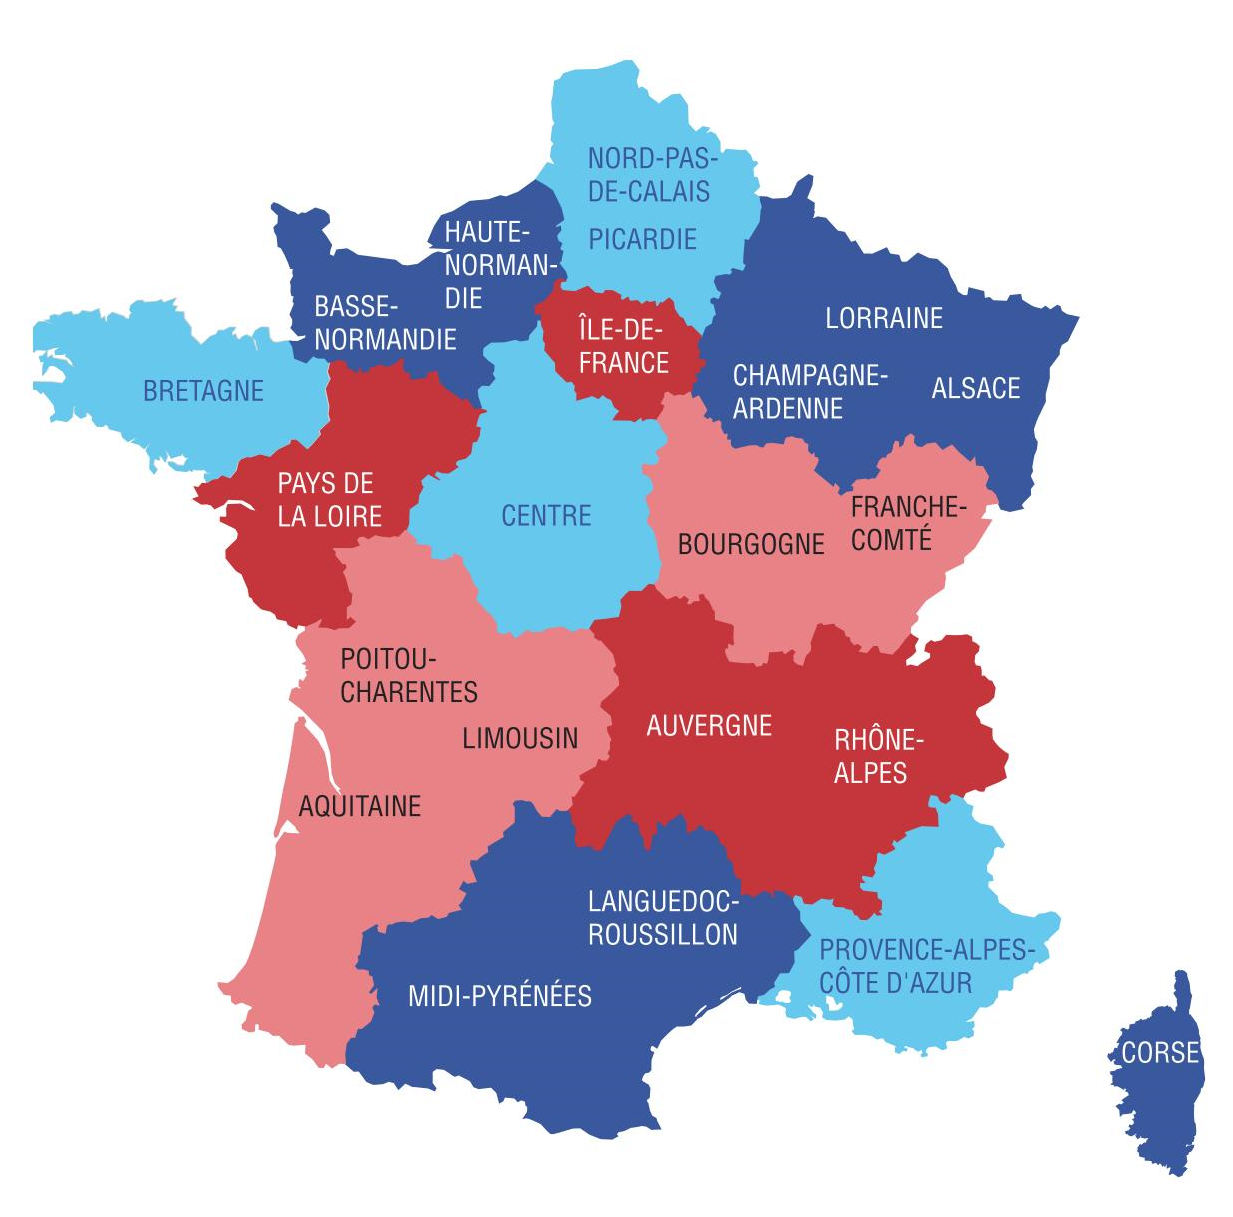 13 New Regions Created by the New Draft Law Currently Discussed in Parliament (Gouvernement.fr, 2014)